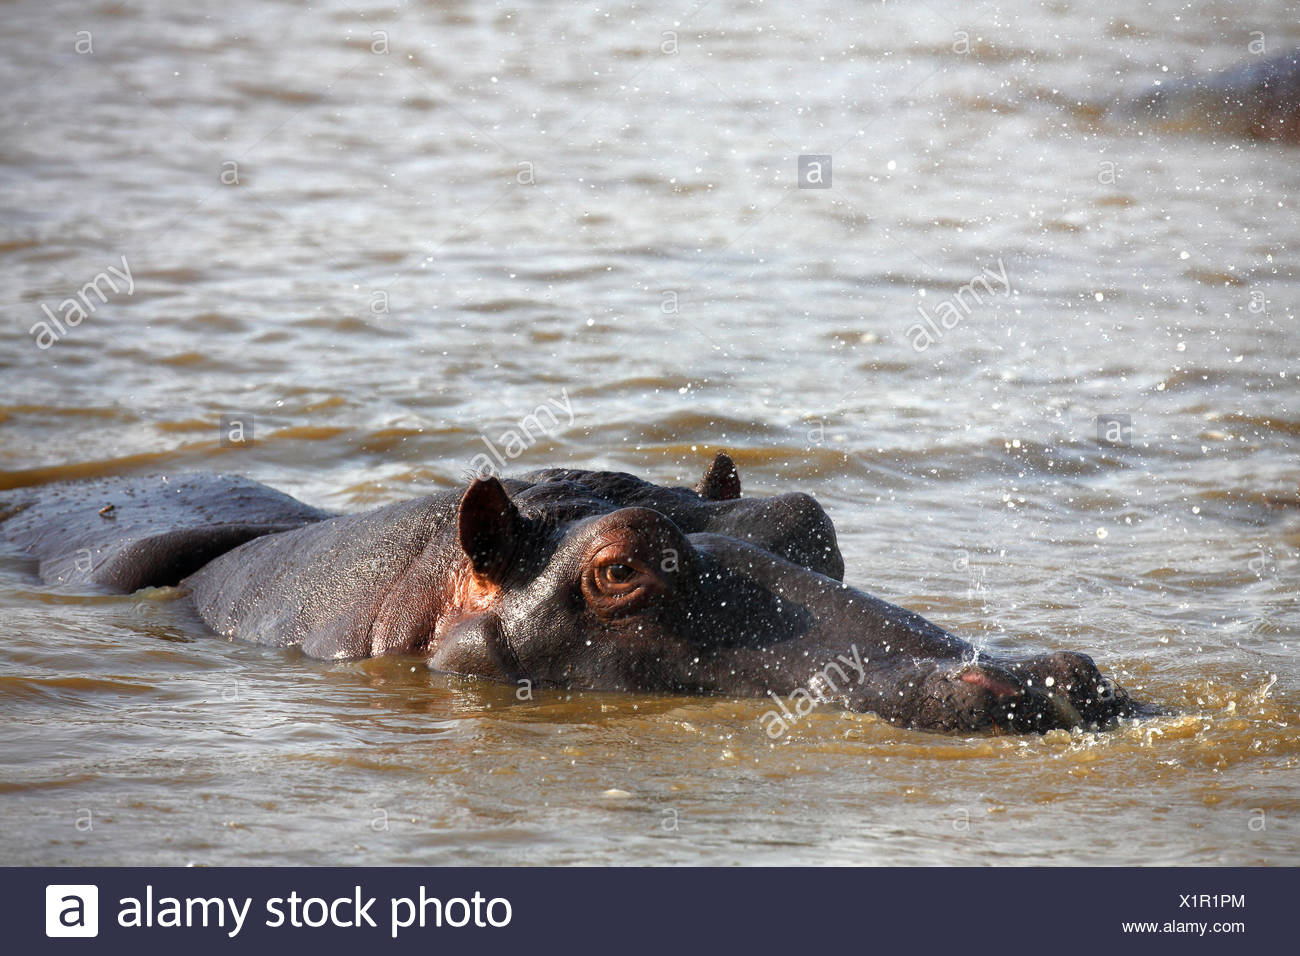 Hippo (Hippopatamus amphibius) breathing out, squirting water, in the water, iSimangaliso Wetland Park, National Park - Stock Image